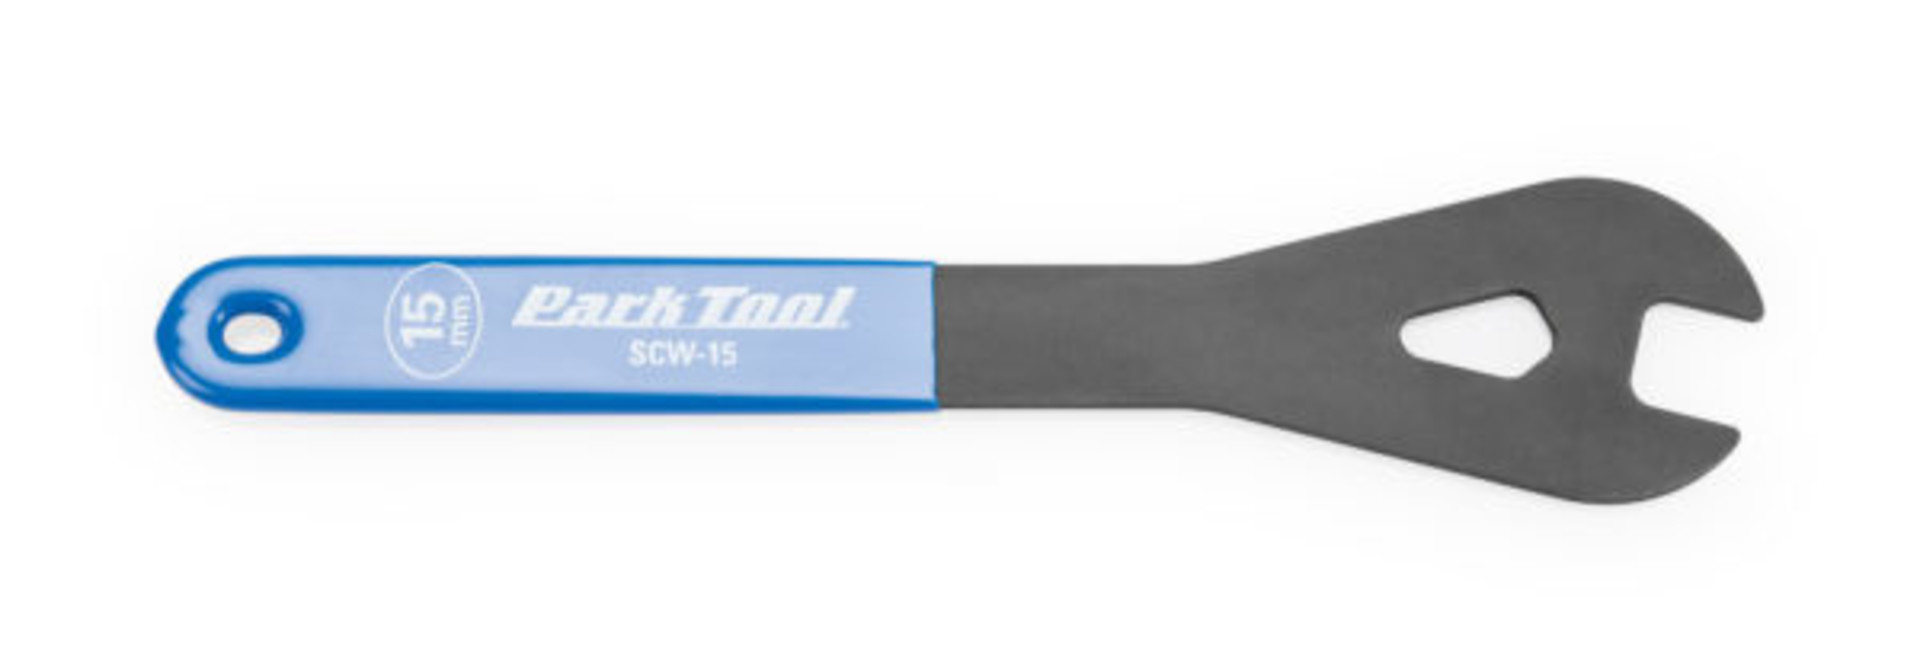 Park Tool, SCW-15, Shop cone wrench, 15mm